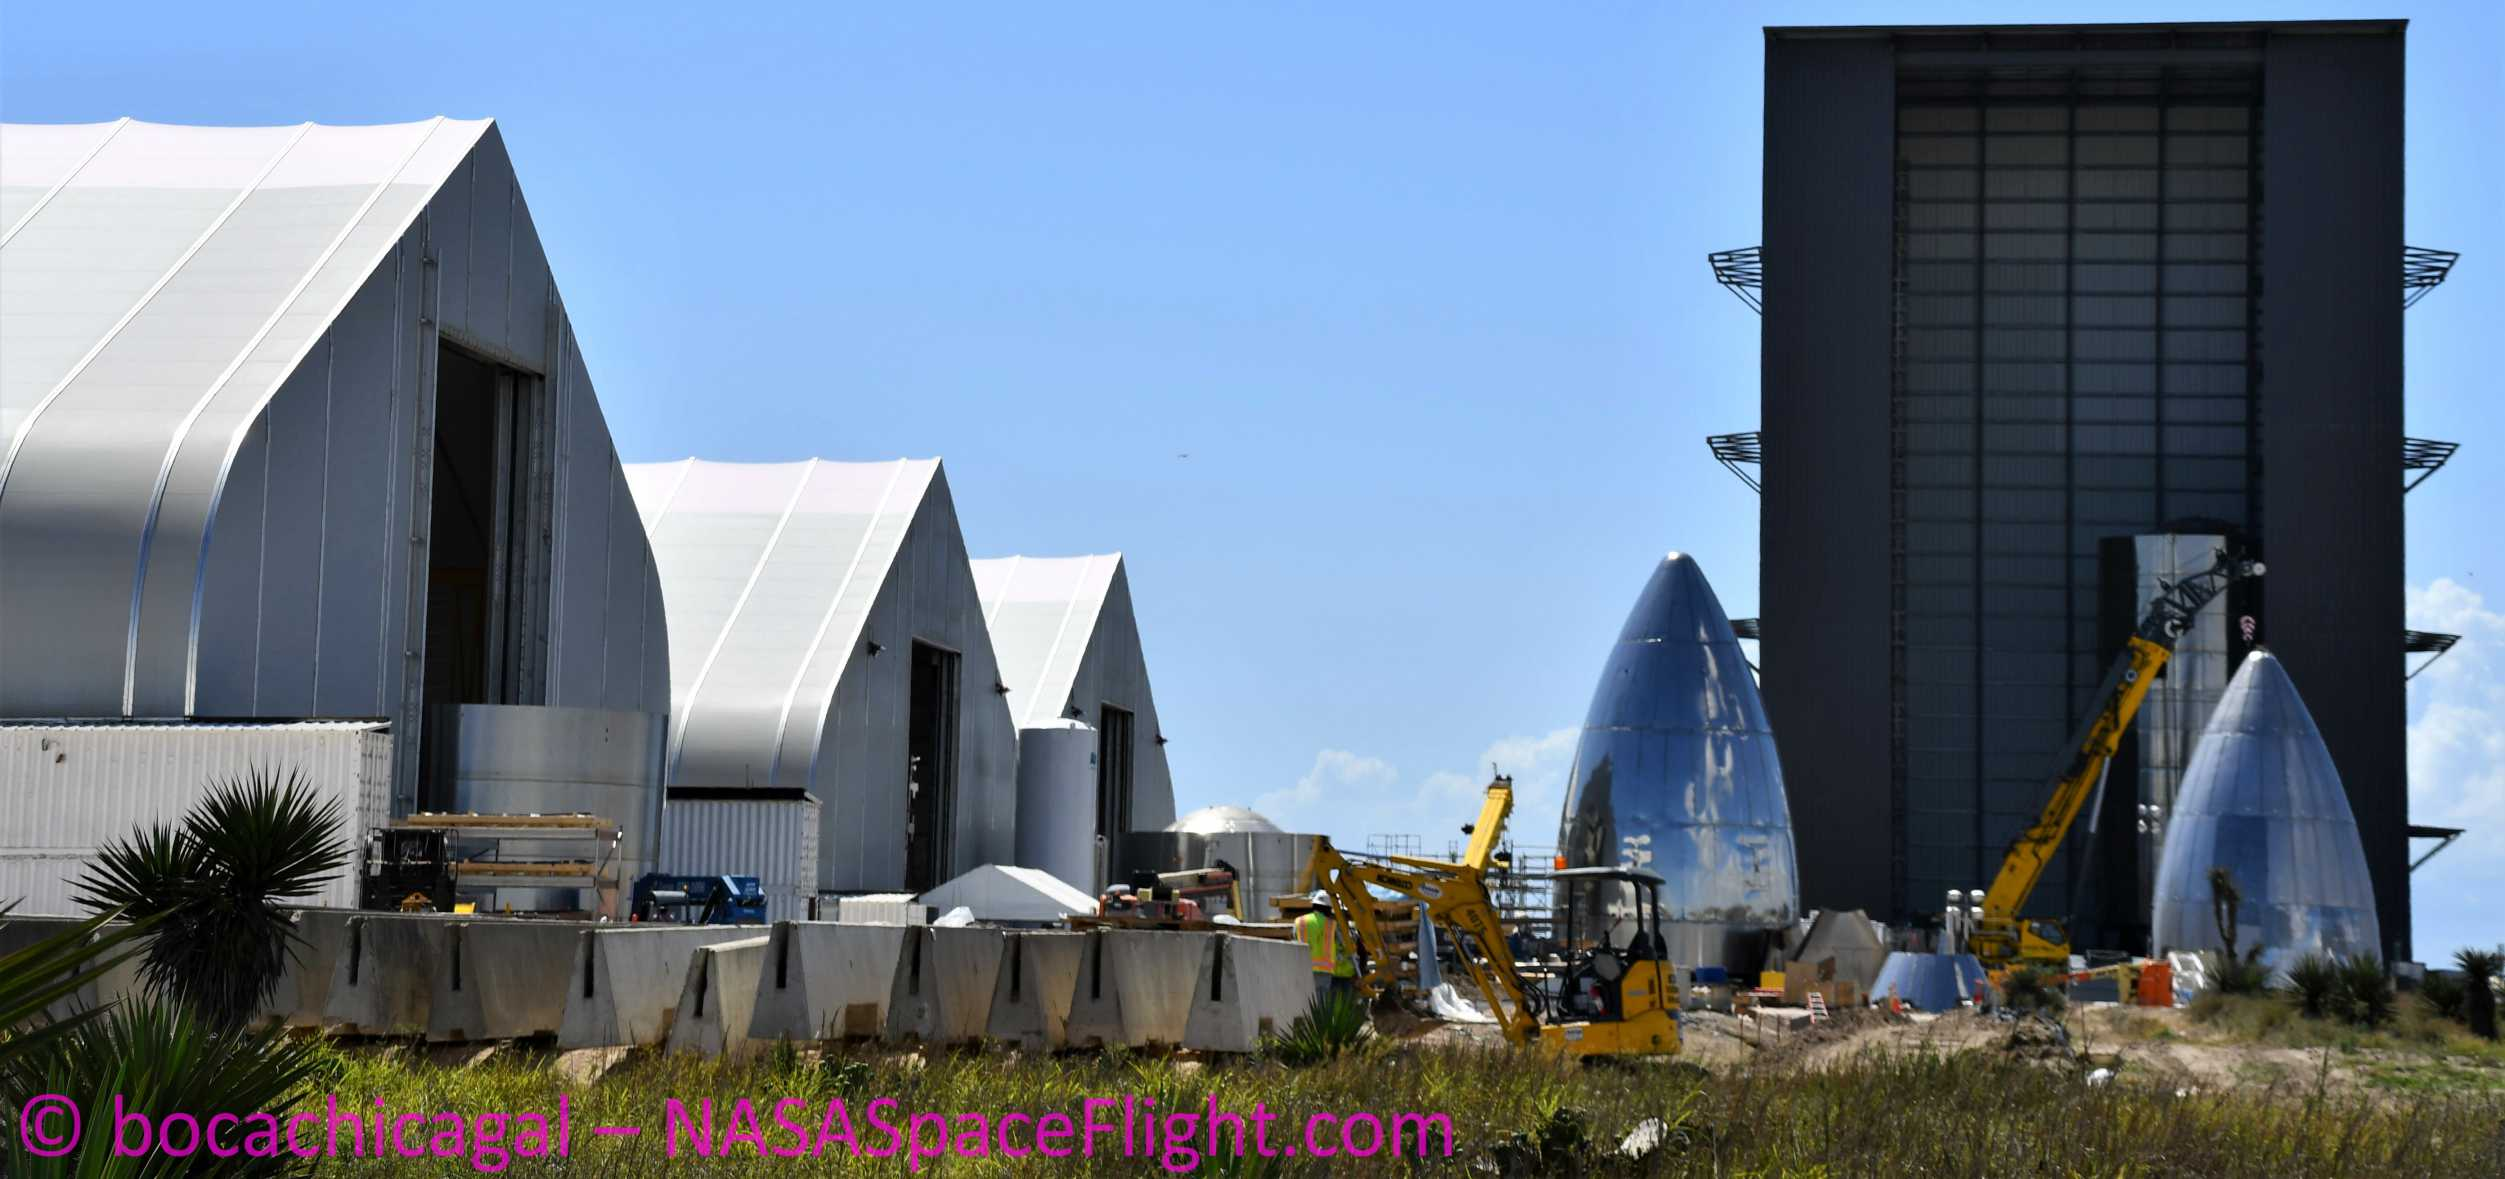 Starship Boca Chica 051020 (NASASpaceflight – bocachicagal) SN5 SN6 work 1 crop (c)